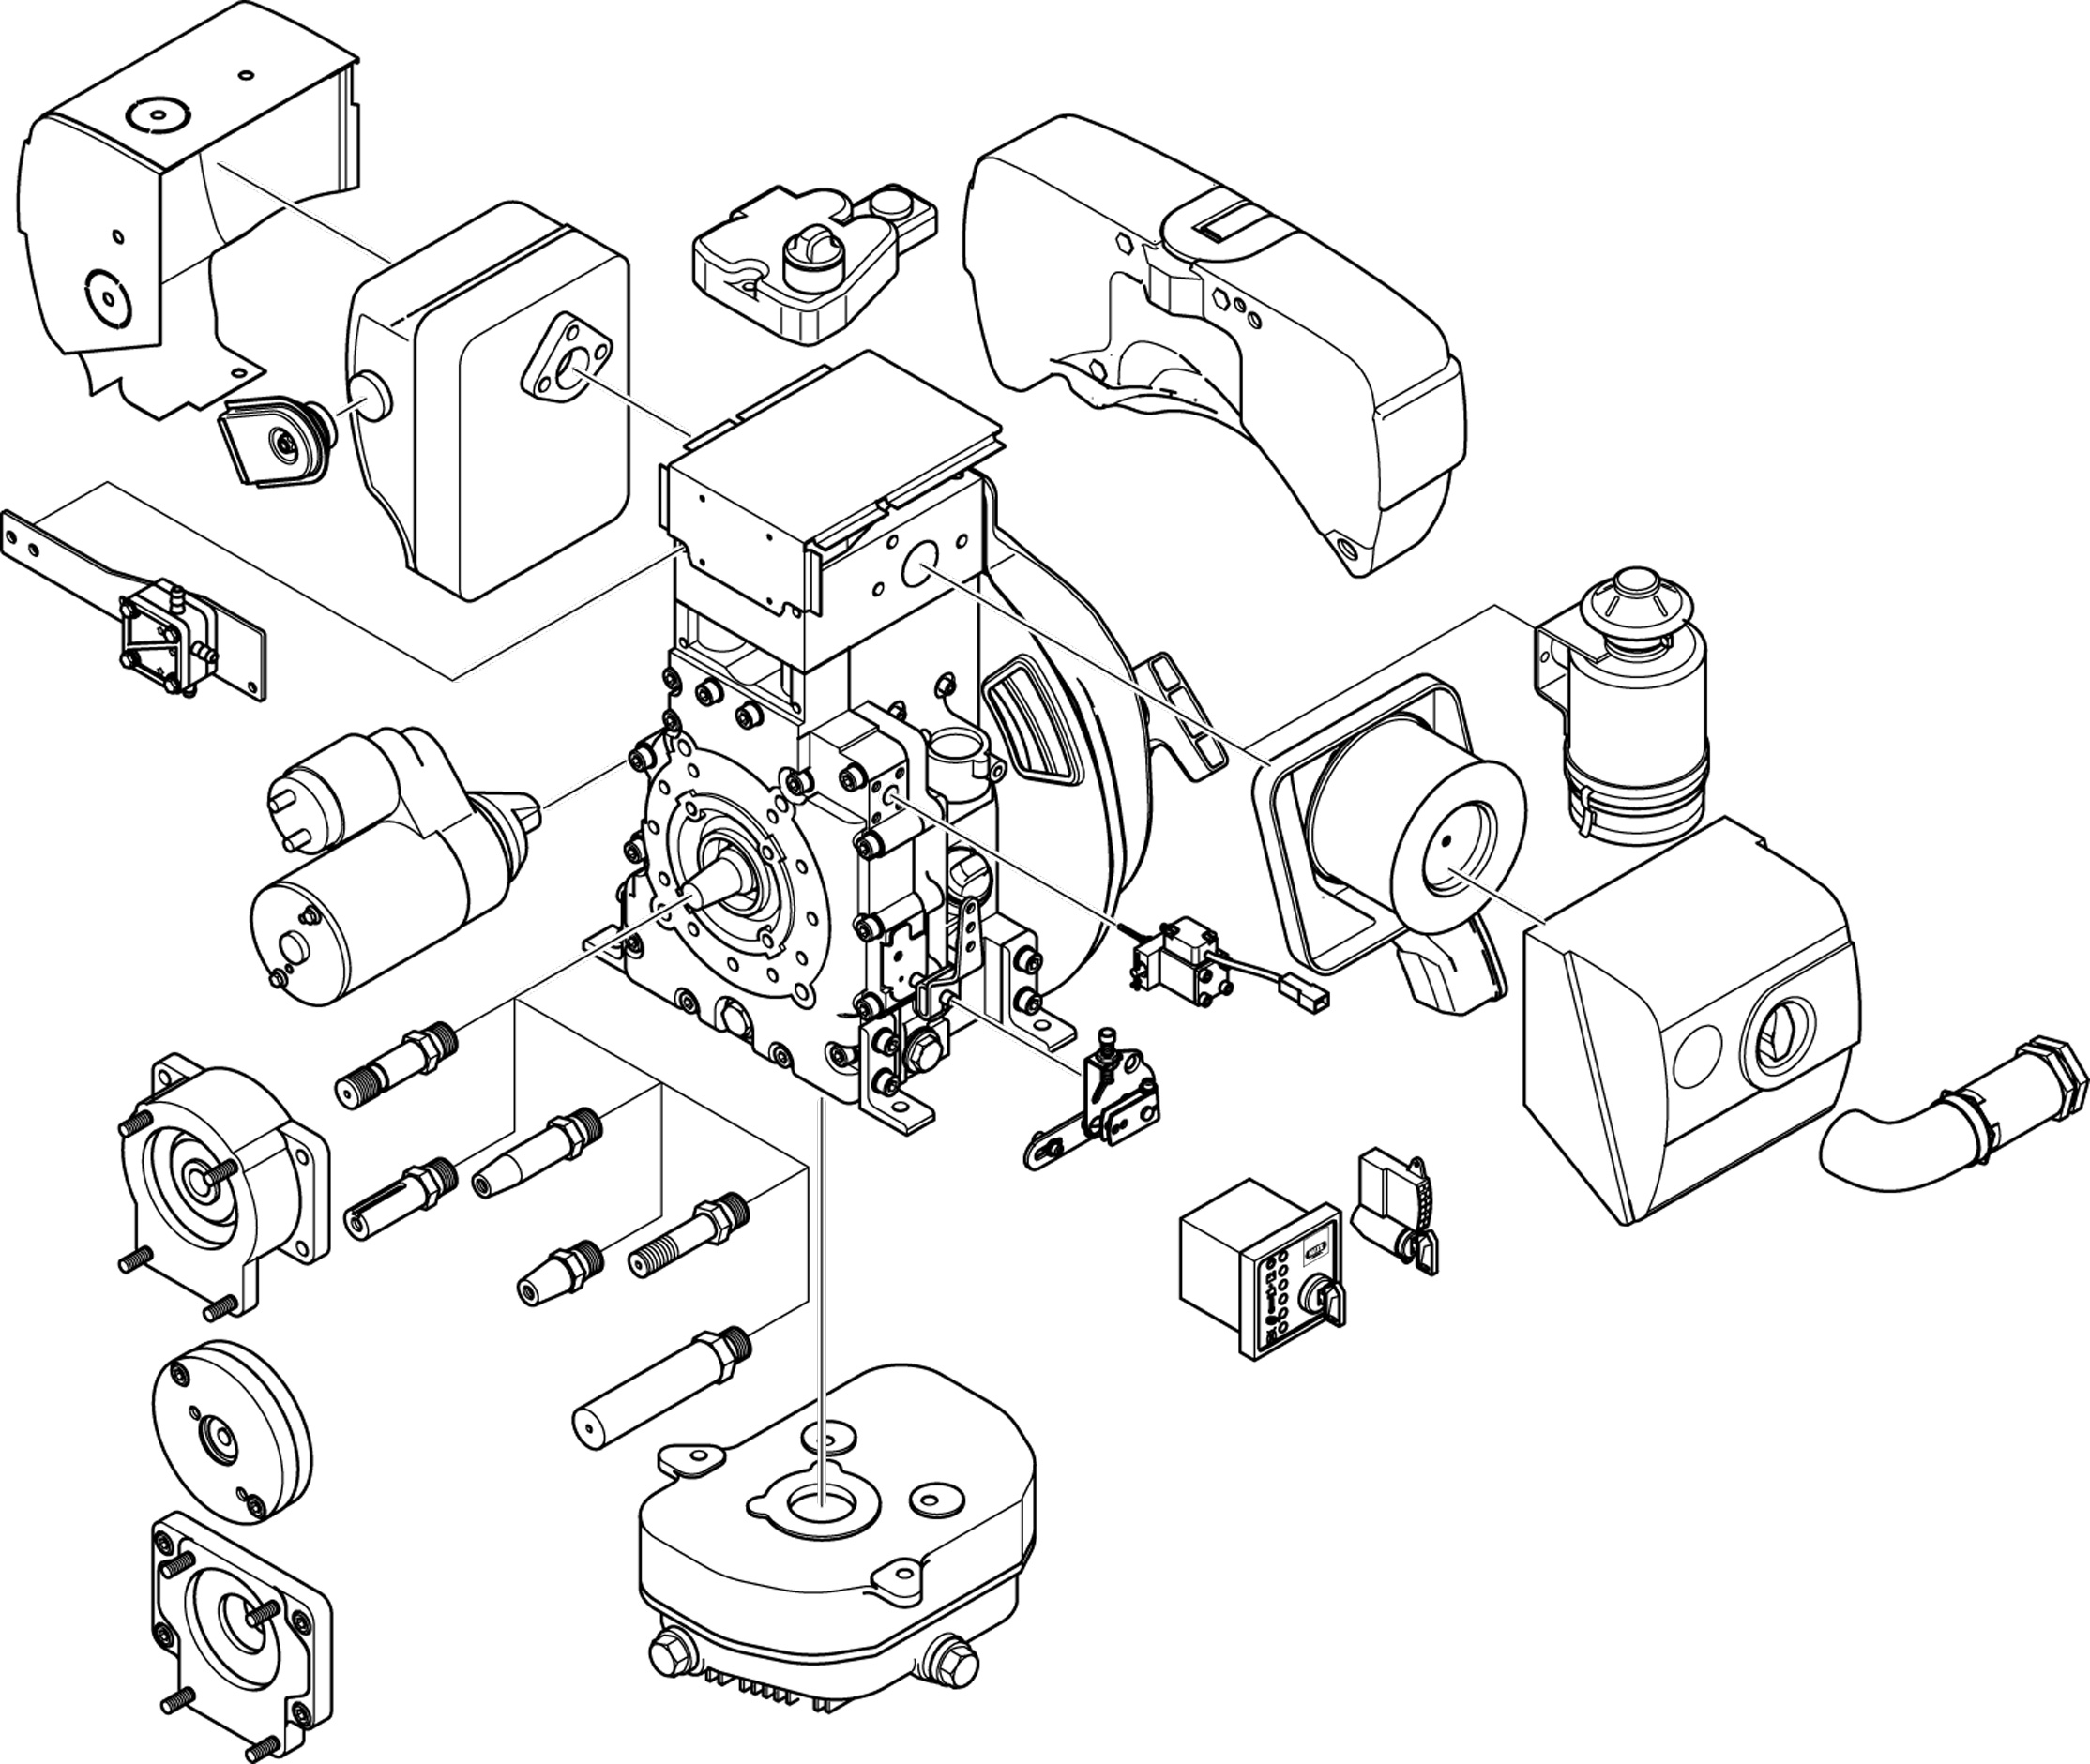 Motorcycle Engine Drawing At Free For Personal Use Honda Cb750 Cutaway Parts